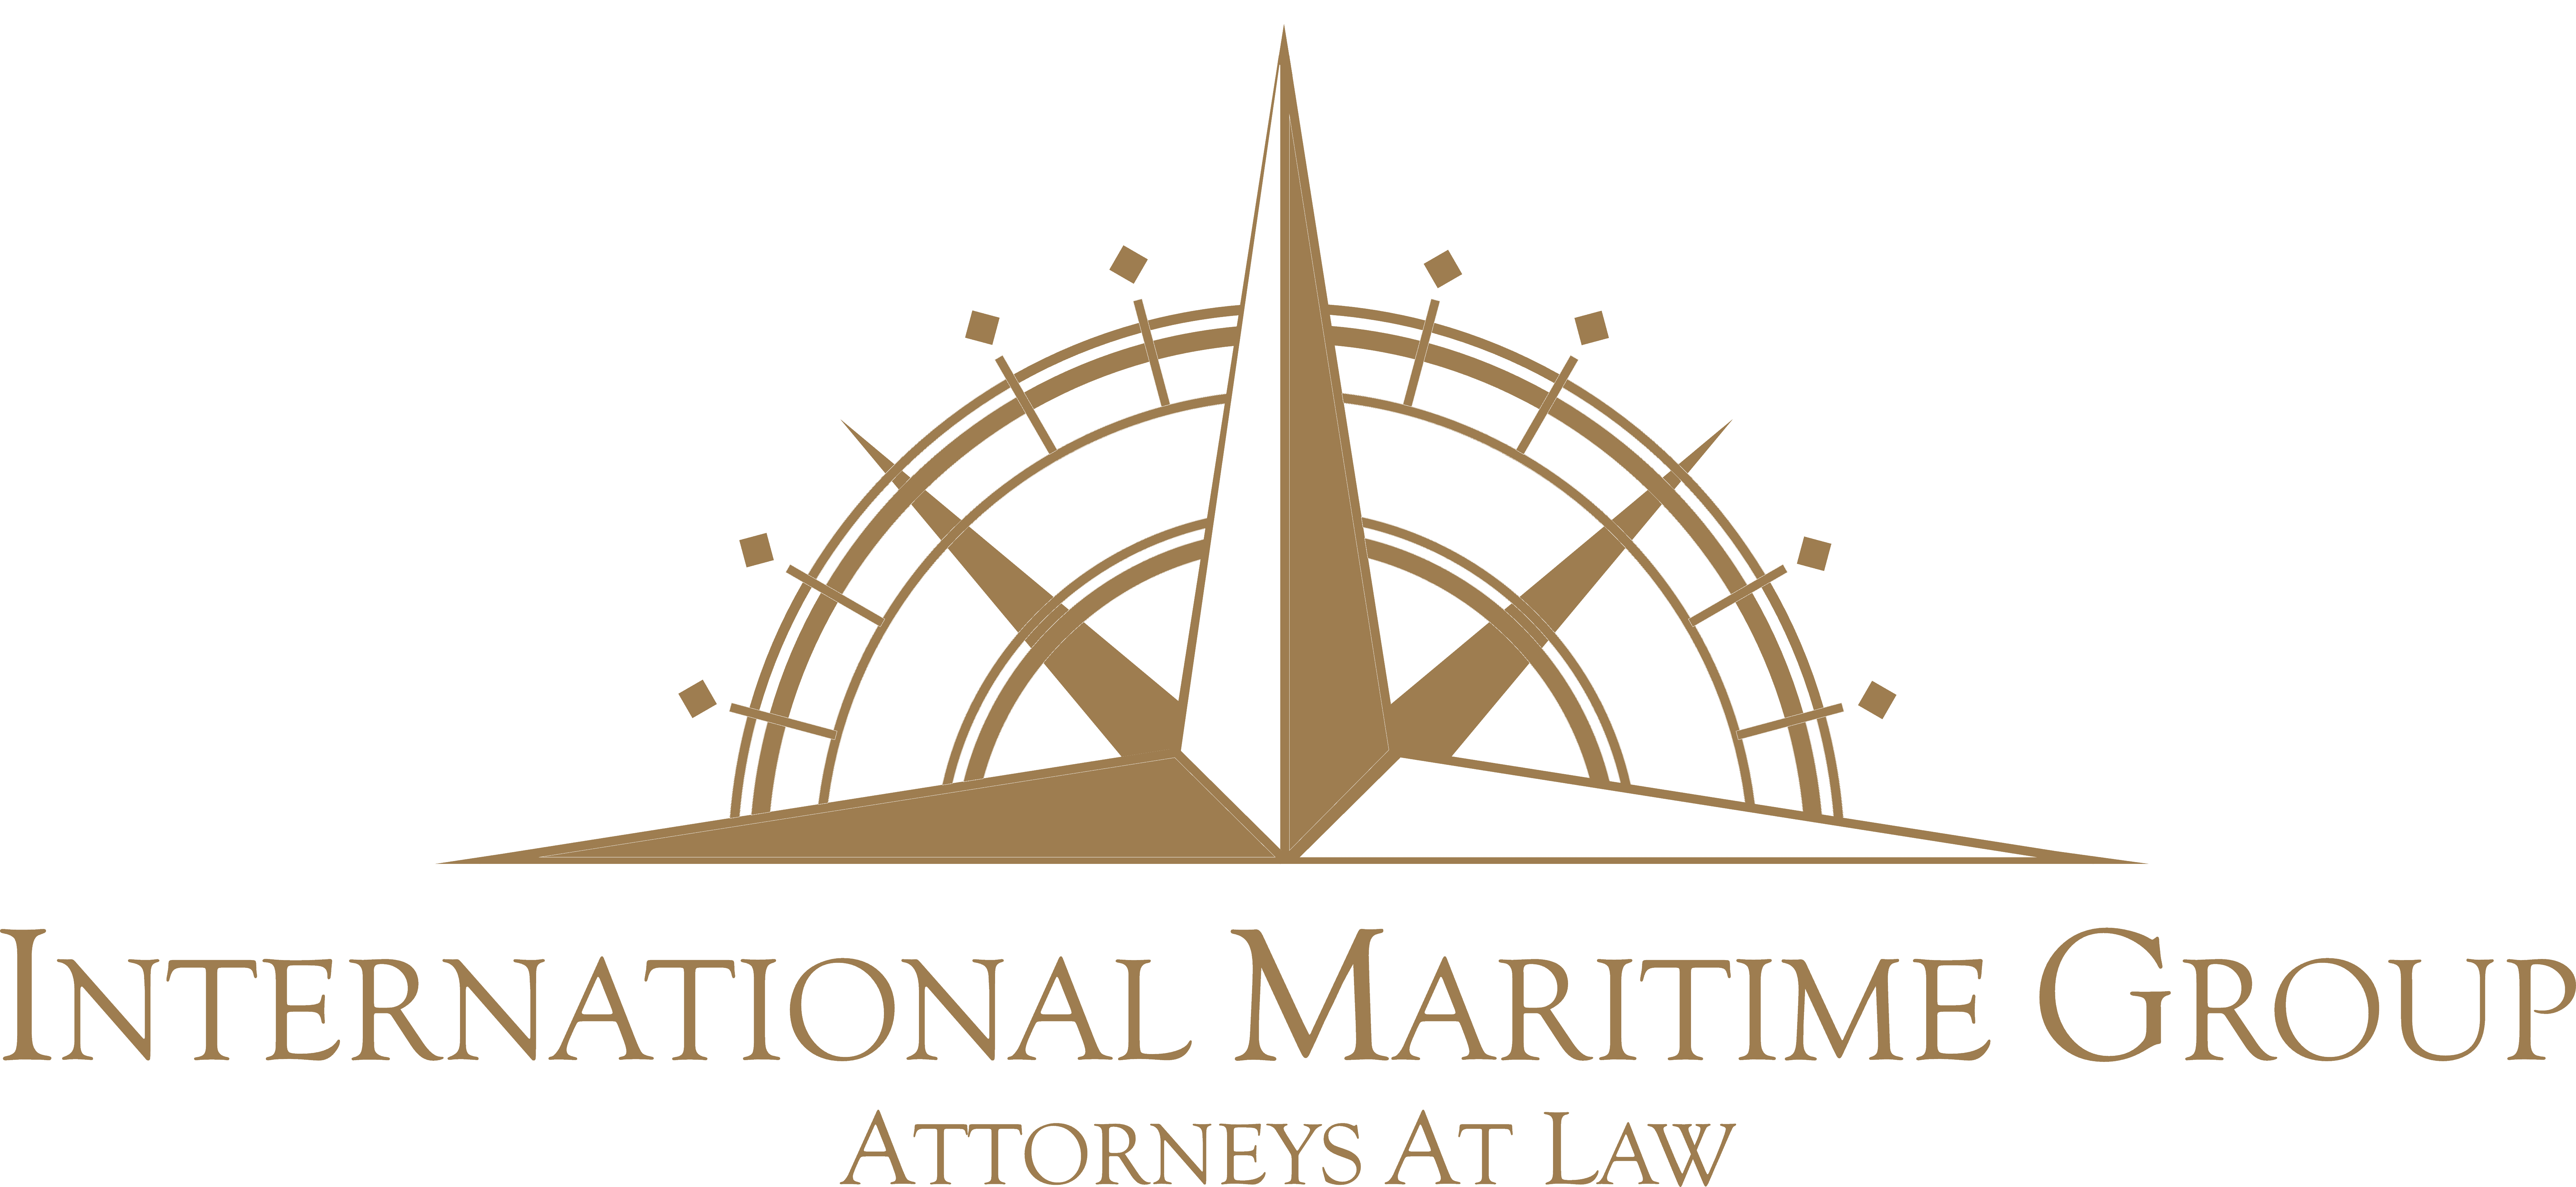 International Maritime Group – Shipping, Energy, Trade, Insurance, and Trade Law Specialists